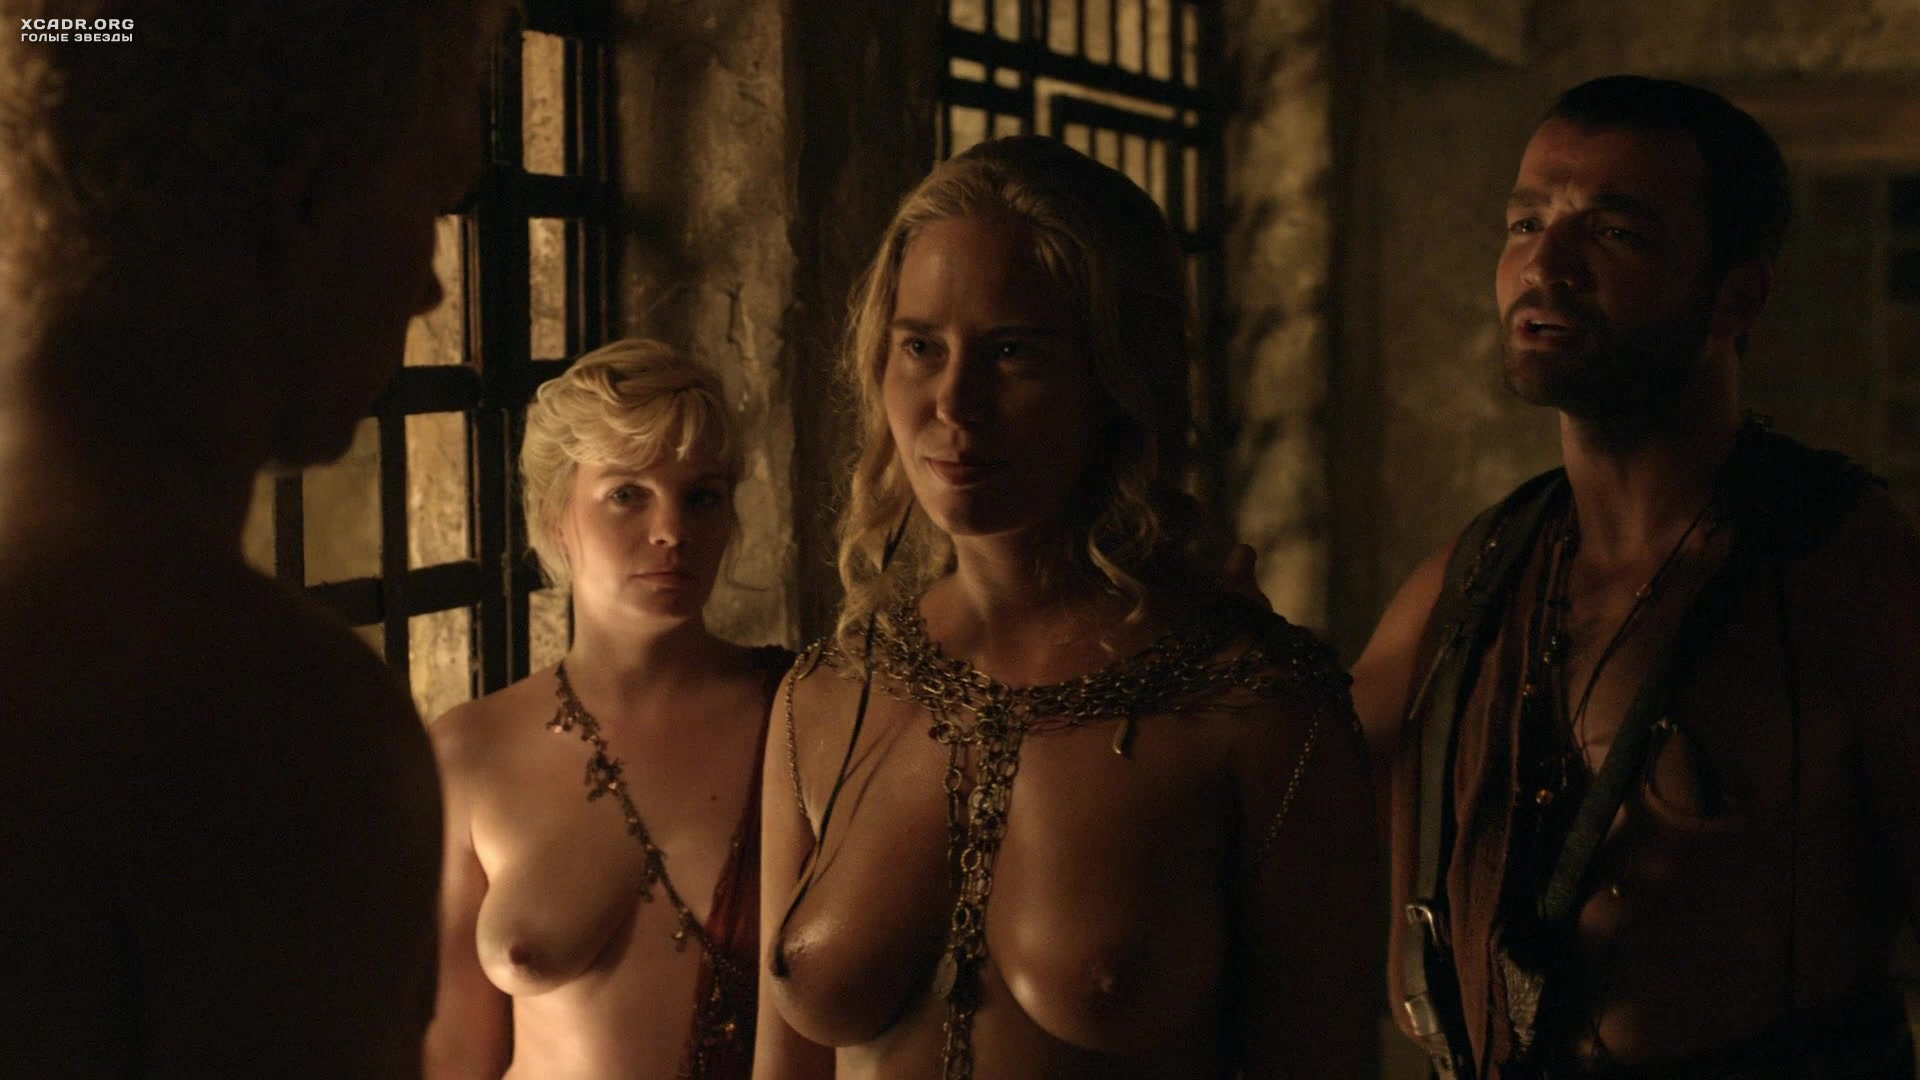 Is Hbo's Female Nudity Contributing To A Bigger Problem